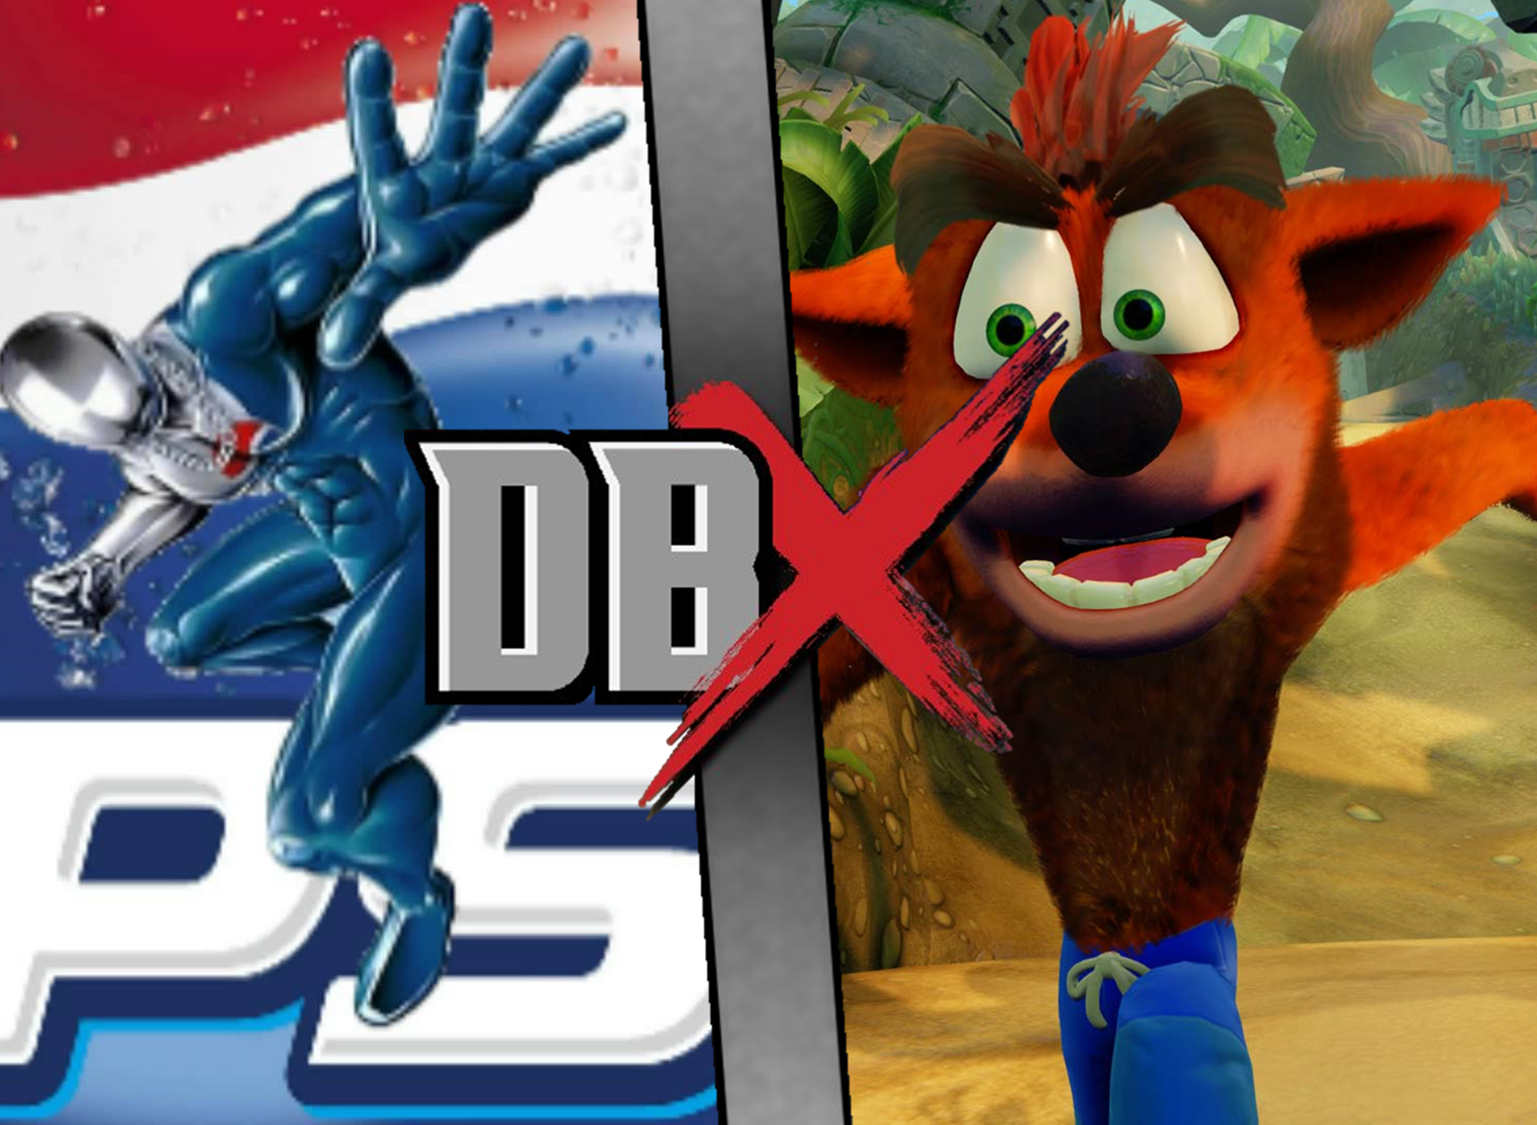 Crash Bandicoot VS Pepsiman